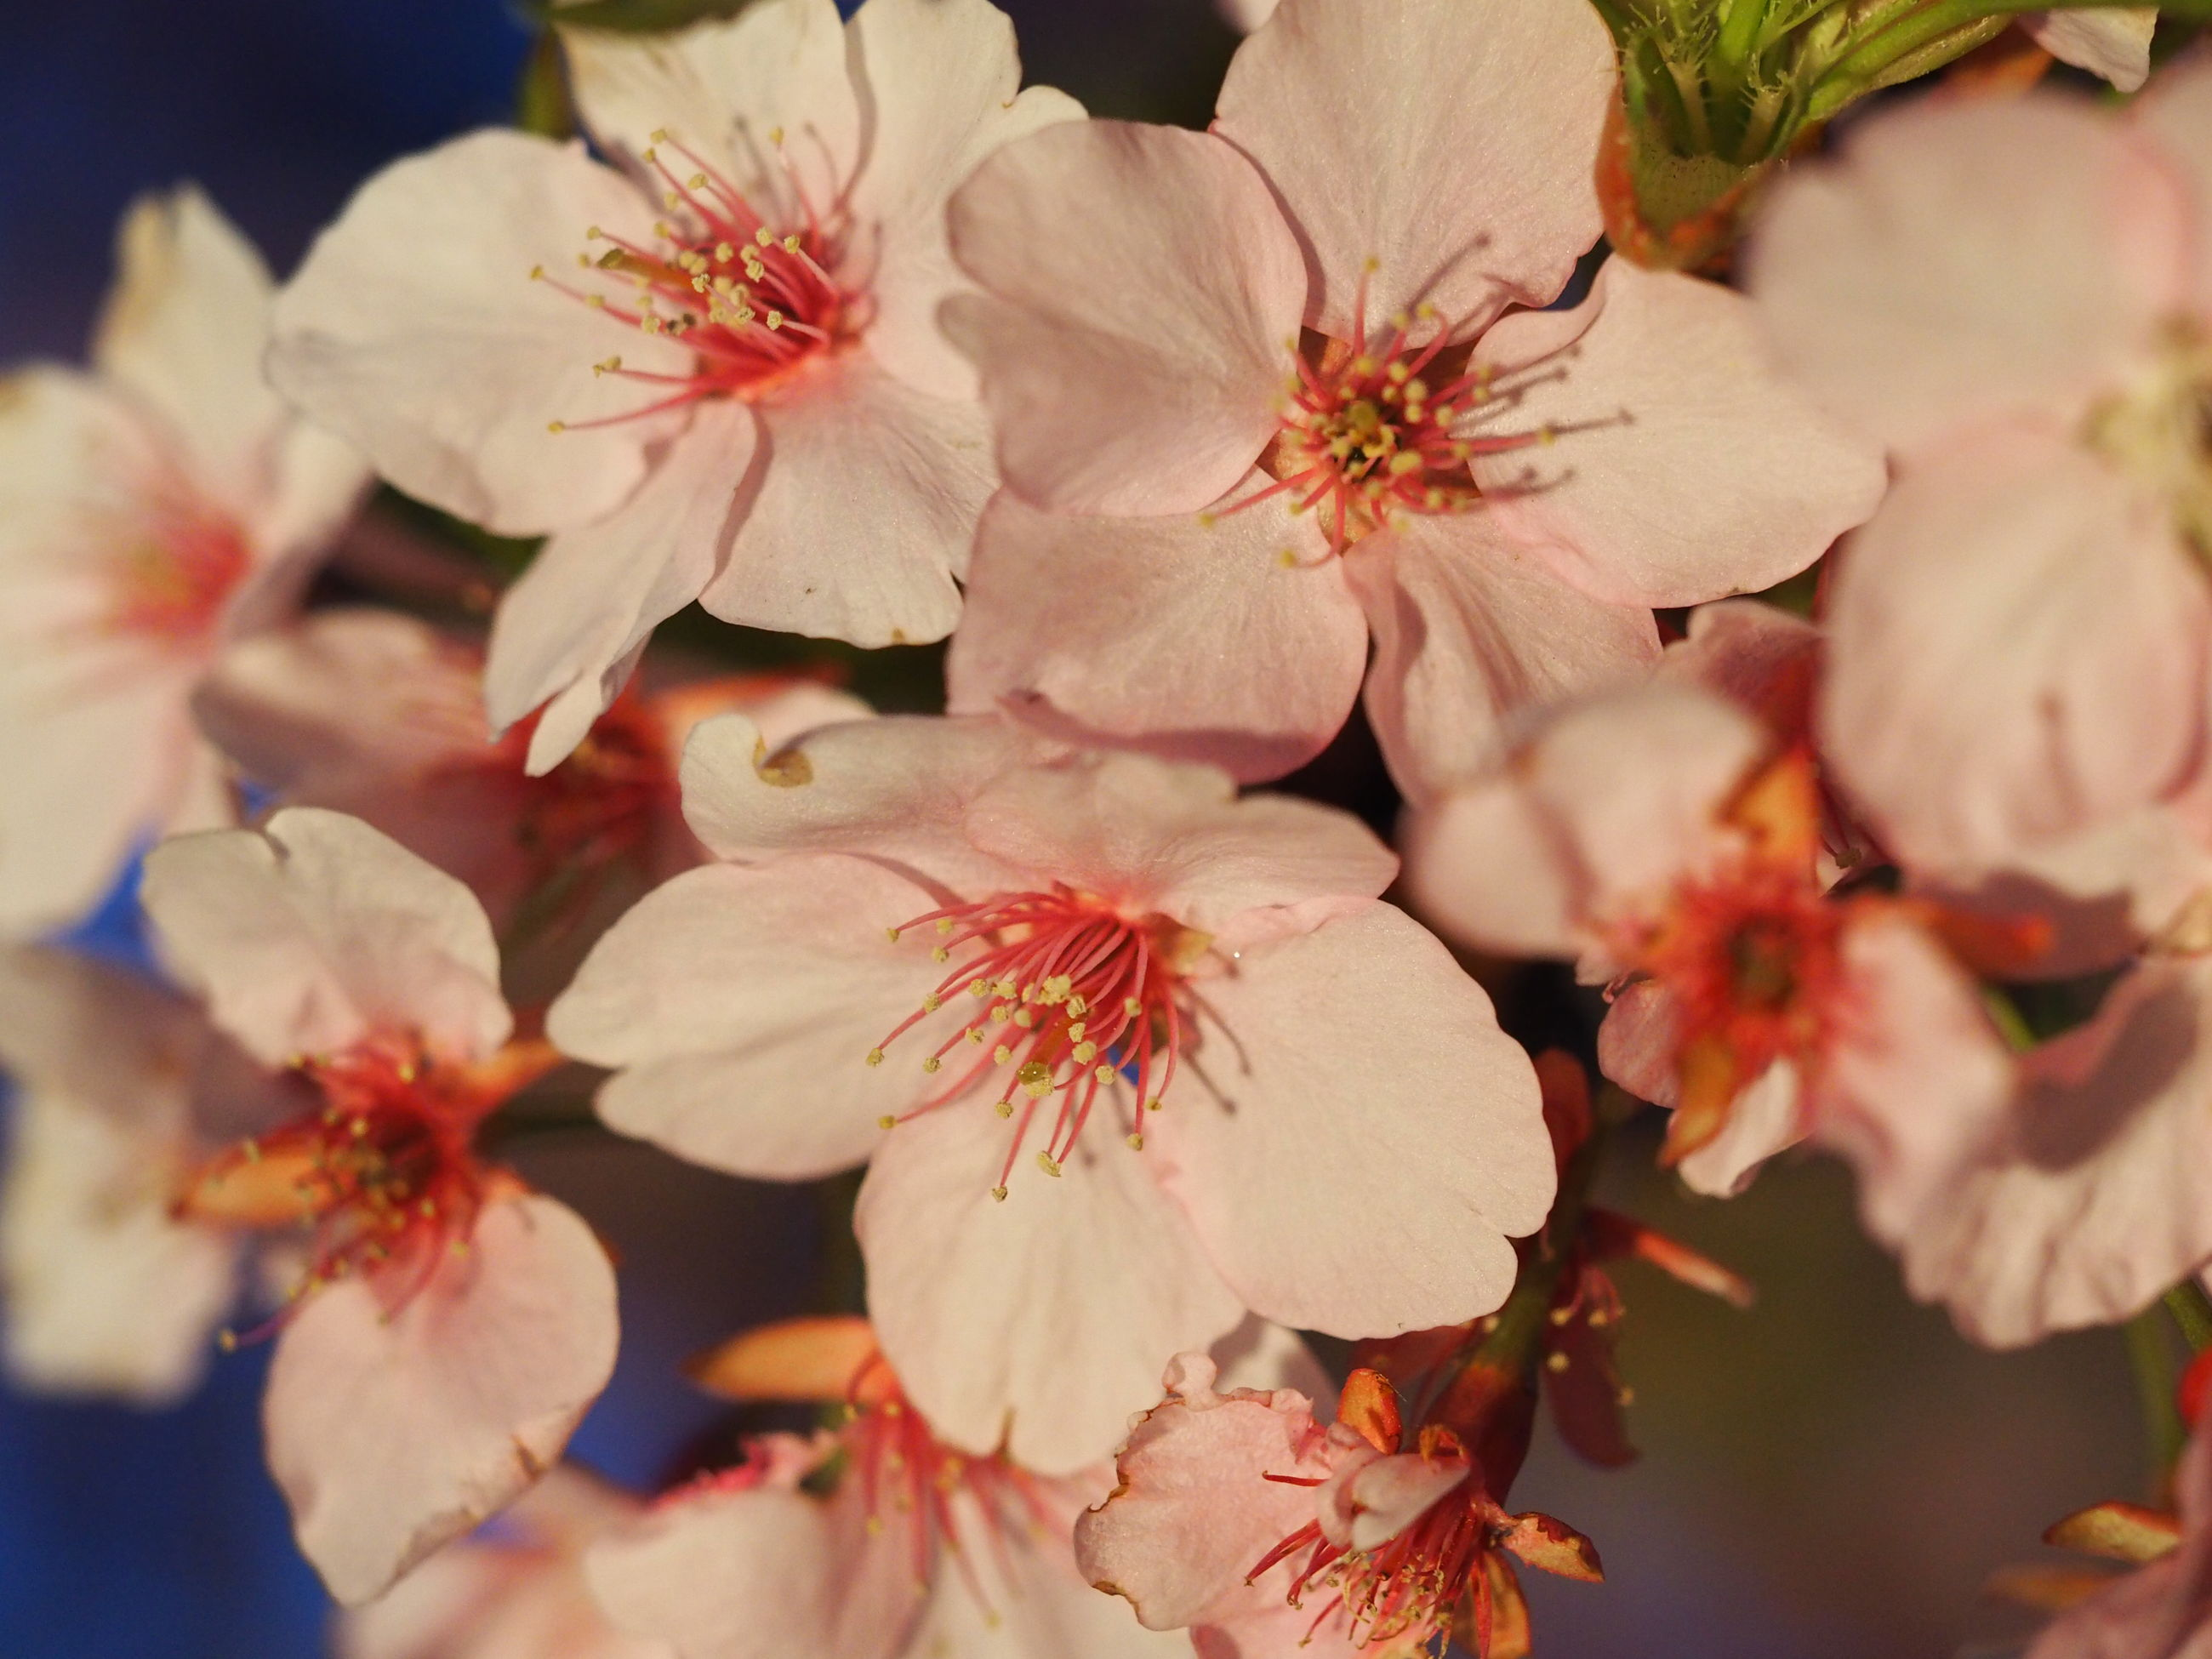 flower, freshness, fragility, petal, growth, beauty in nature, branch, nature, close-up, cherry blossom, blossom, flower head, pink color, in bloom, white color, blooming, tree, stamen, focus on foreground, cherry tree